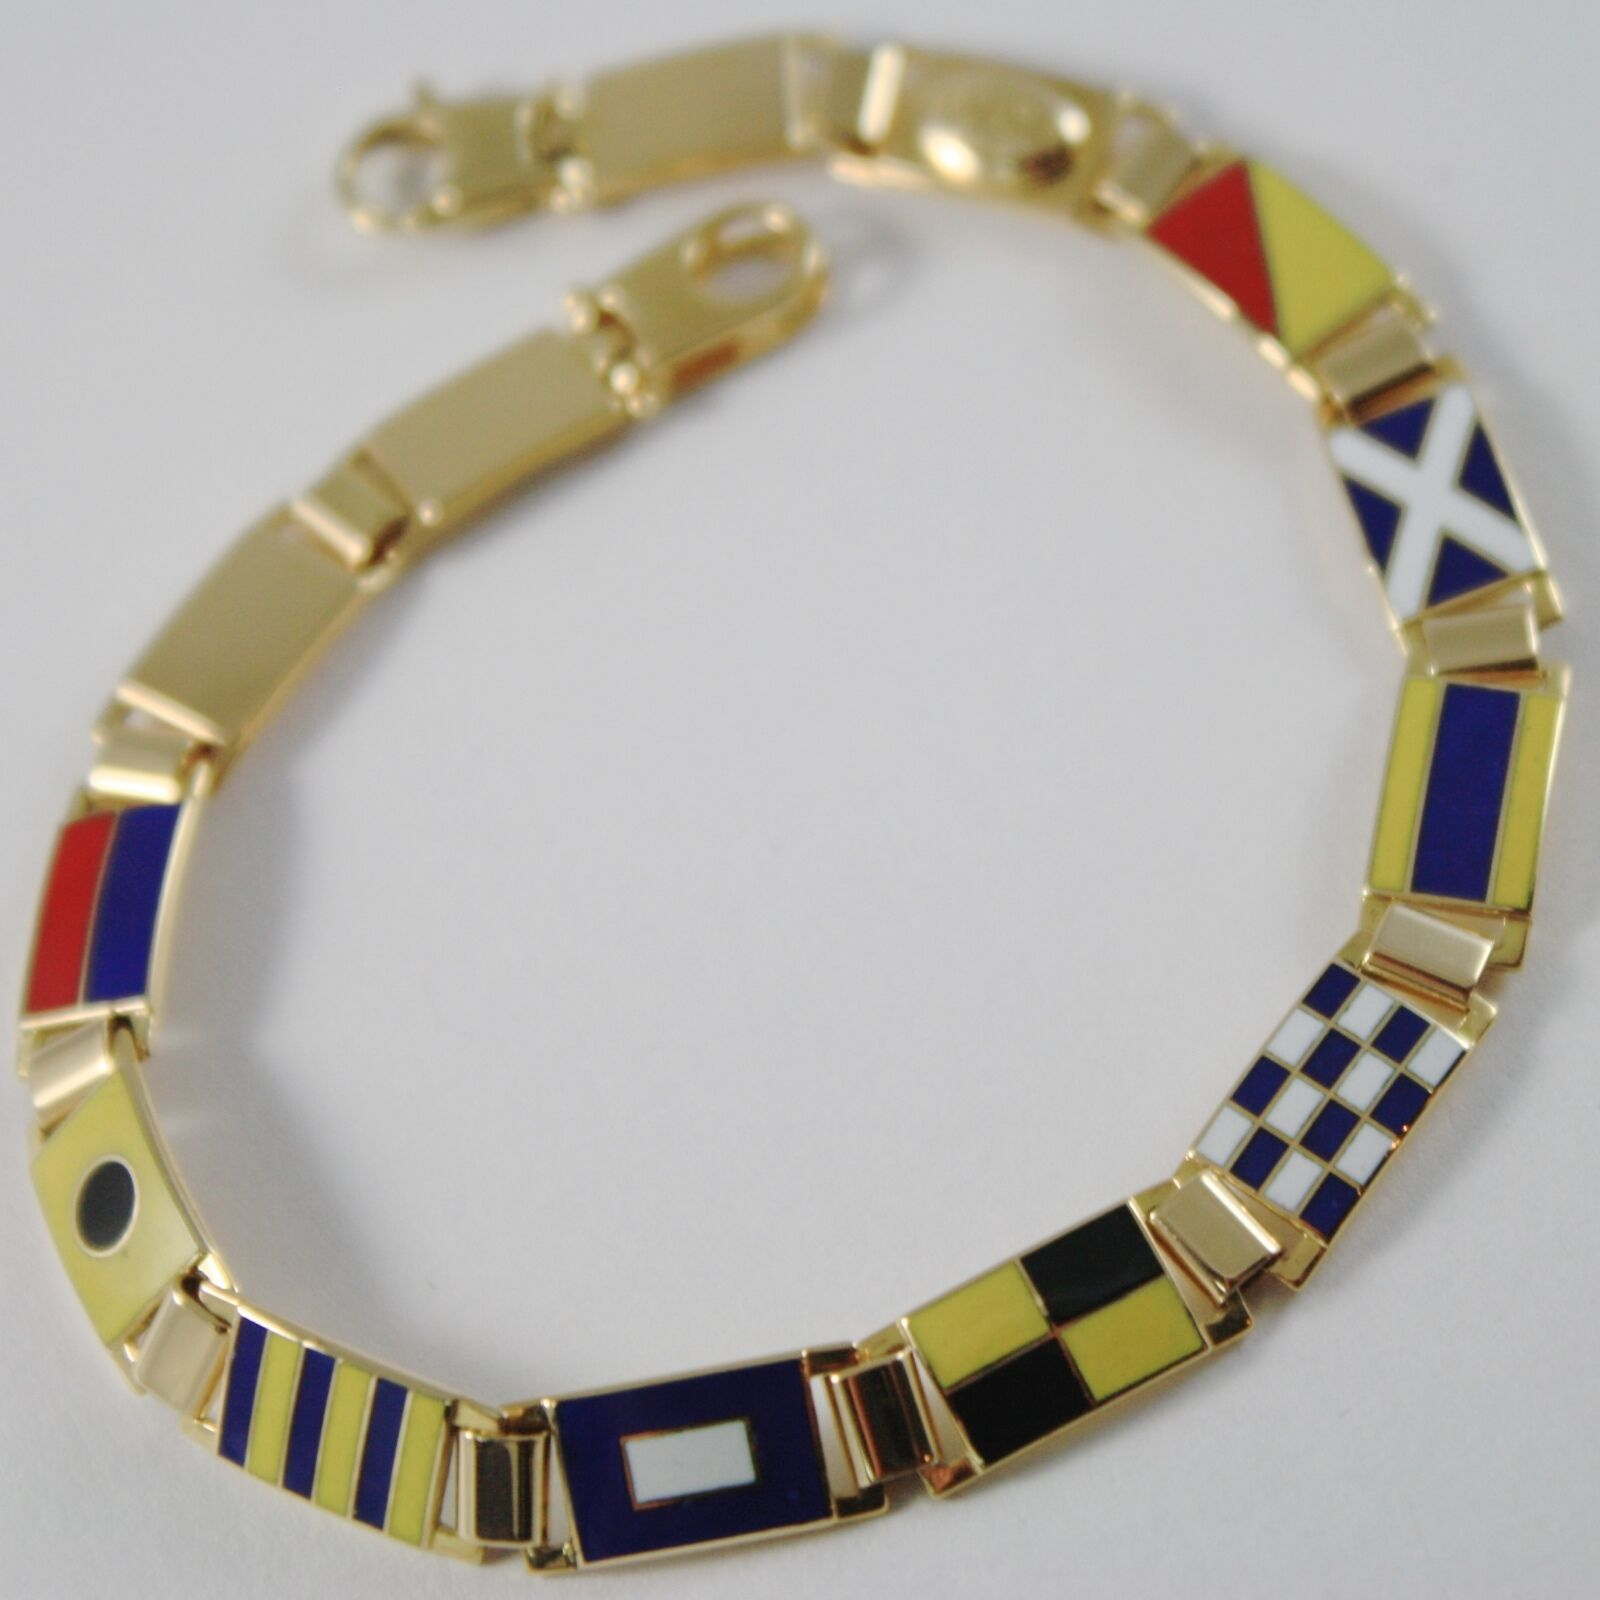 Bracelet Yellow Gold 750 18K, Flags Nautical 6.5 mm, Glazed Tiles, Made in Italy